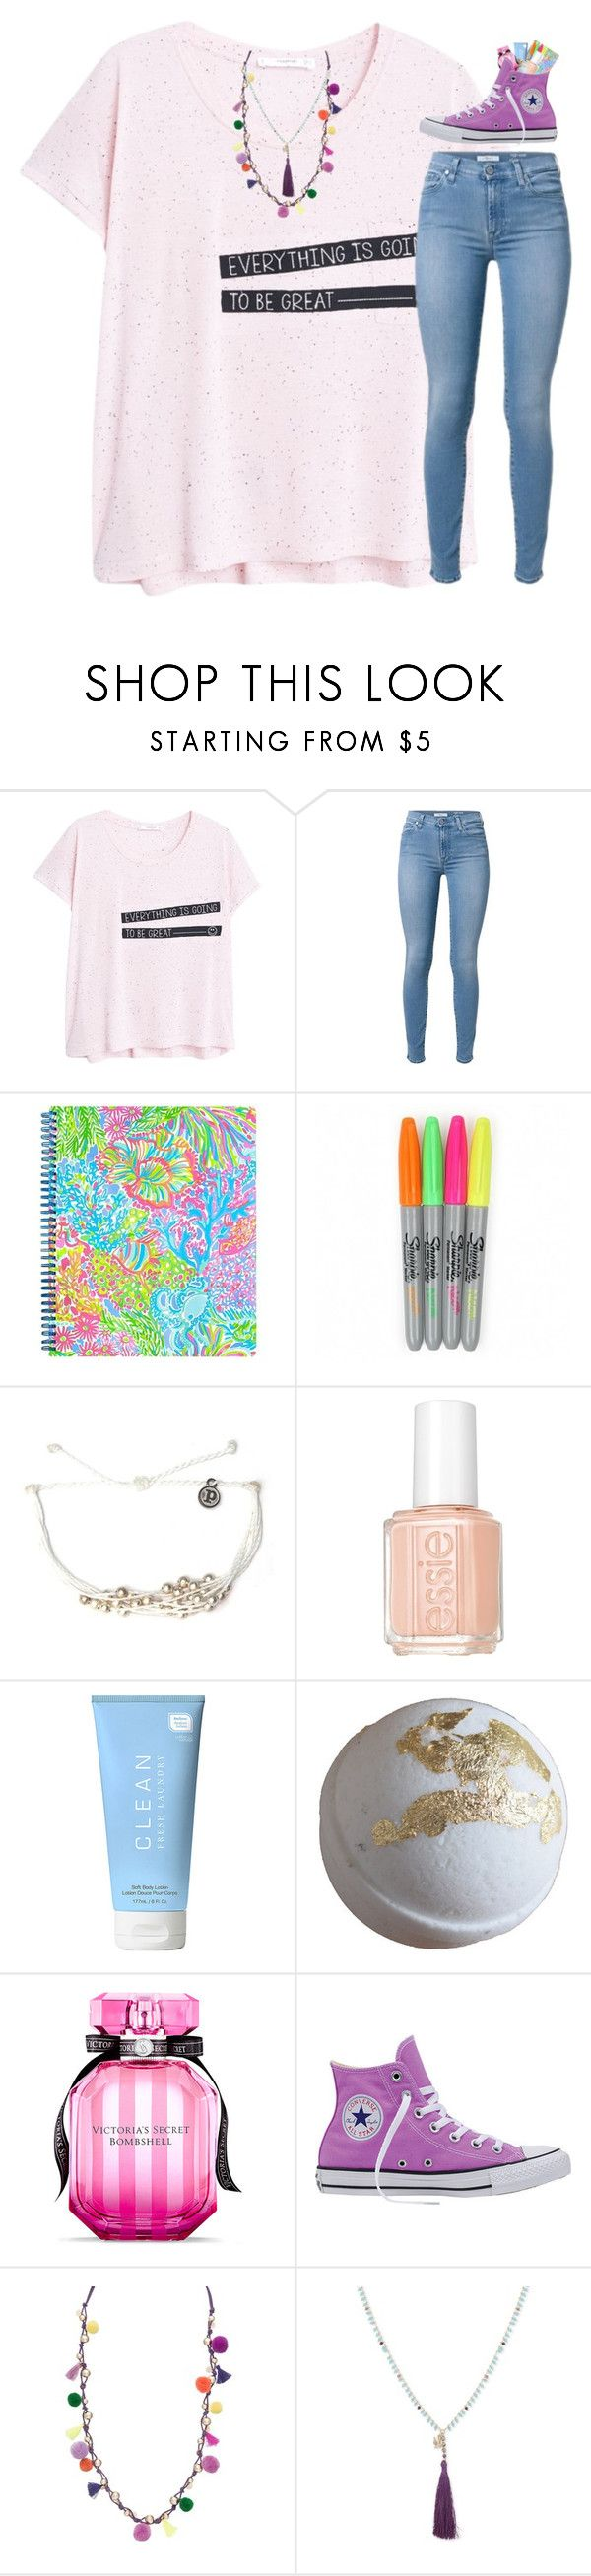 """""""John 8:36"""" by livnewell ❤ liked on Polyvore featuring MANGO, Lilly Pulitzer, Pura Vida, Essie, CLEAN, Victoria's Secret, Converse, Robert Rose and Lonna & Lilly"""